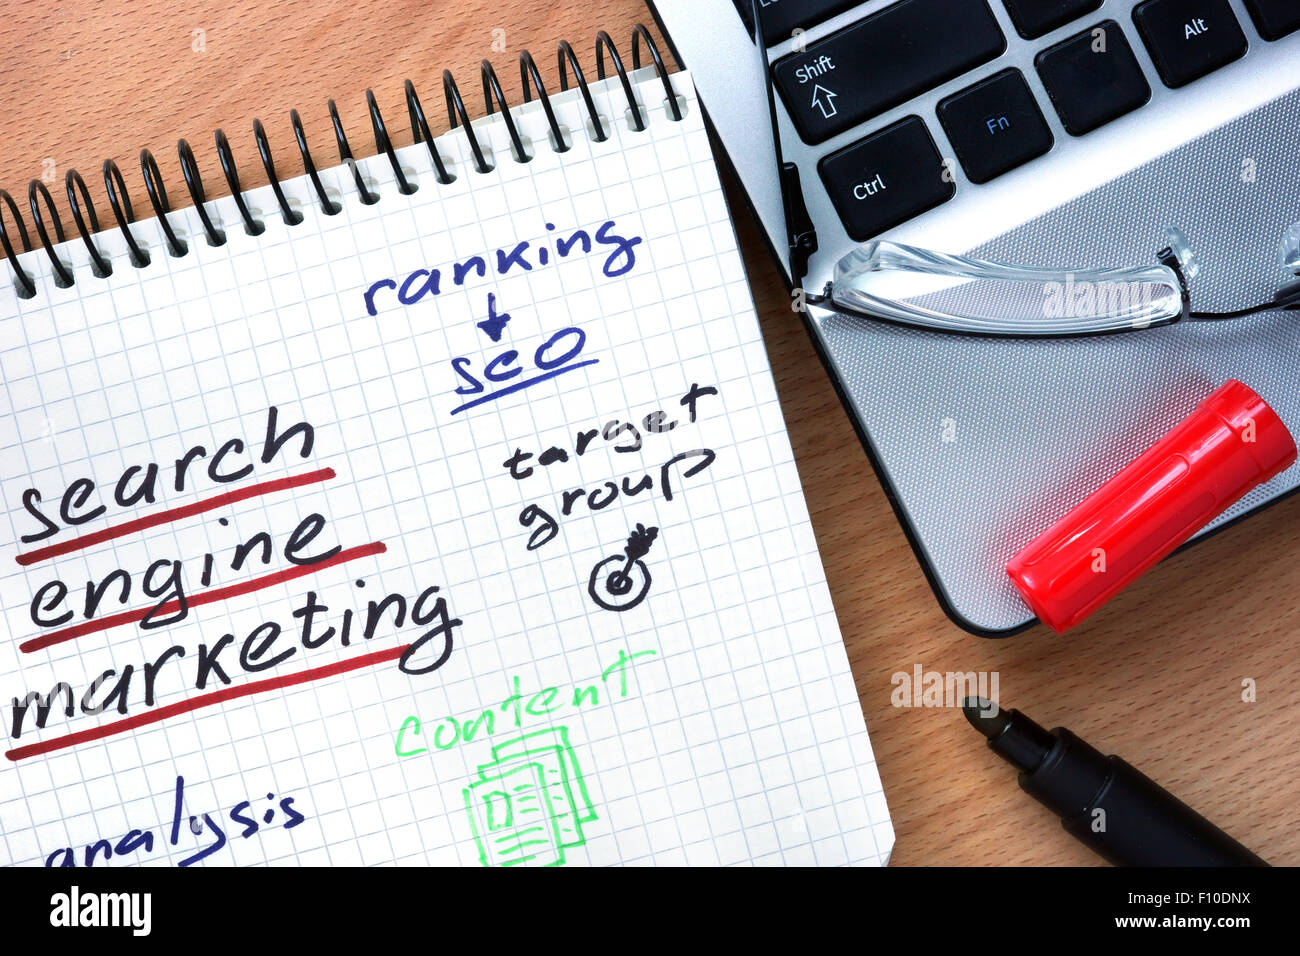 Notepad with words search engine marketing on a wooden background - Stock Image